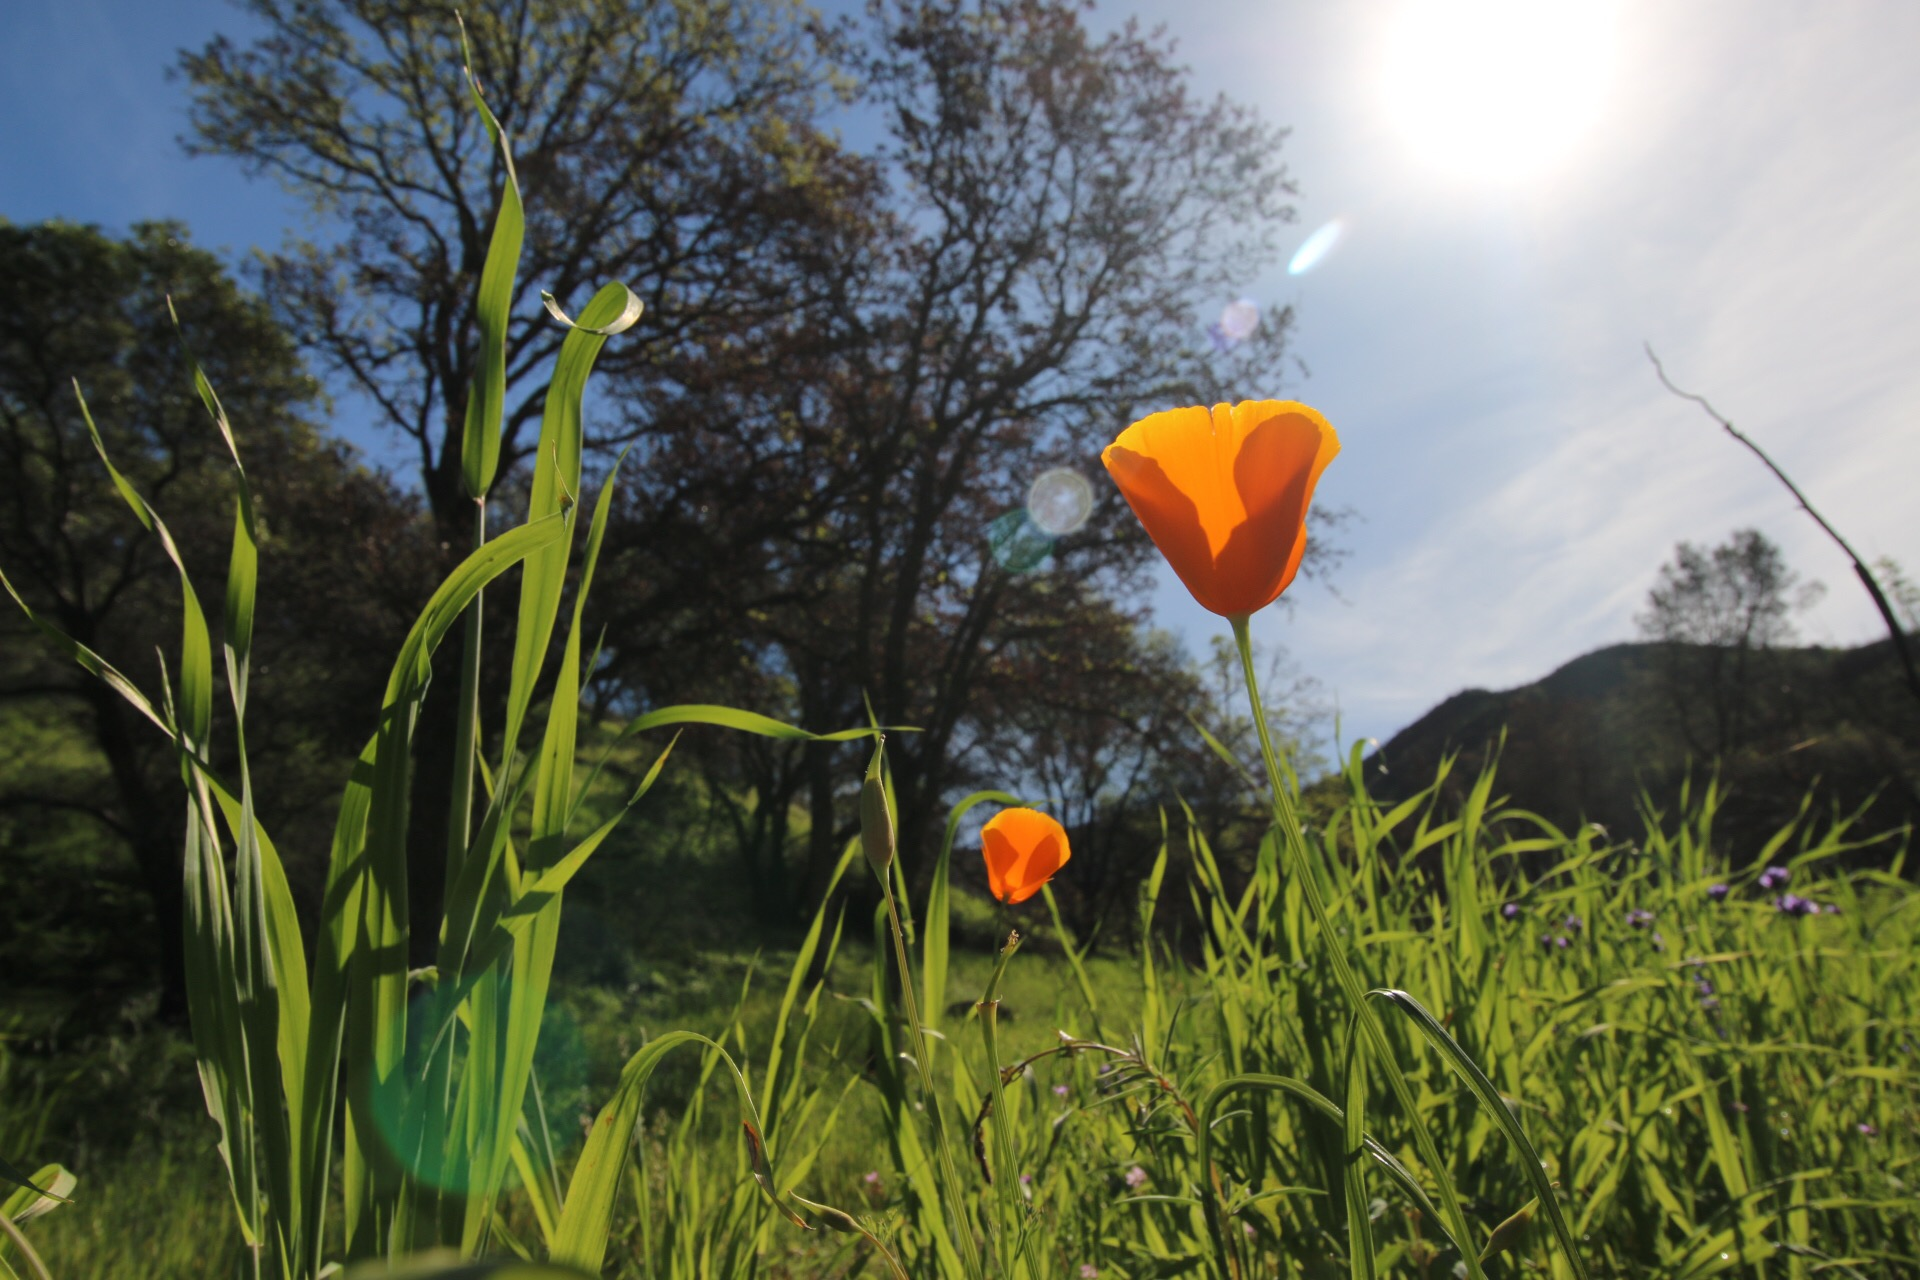 California poppy in field